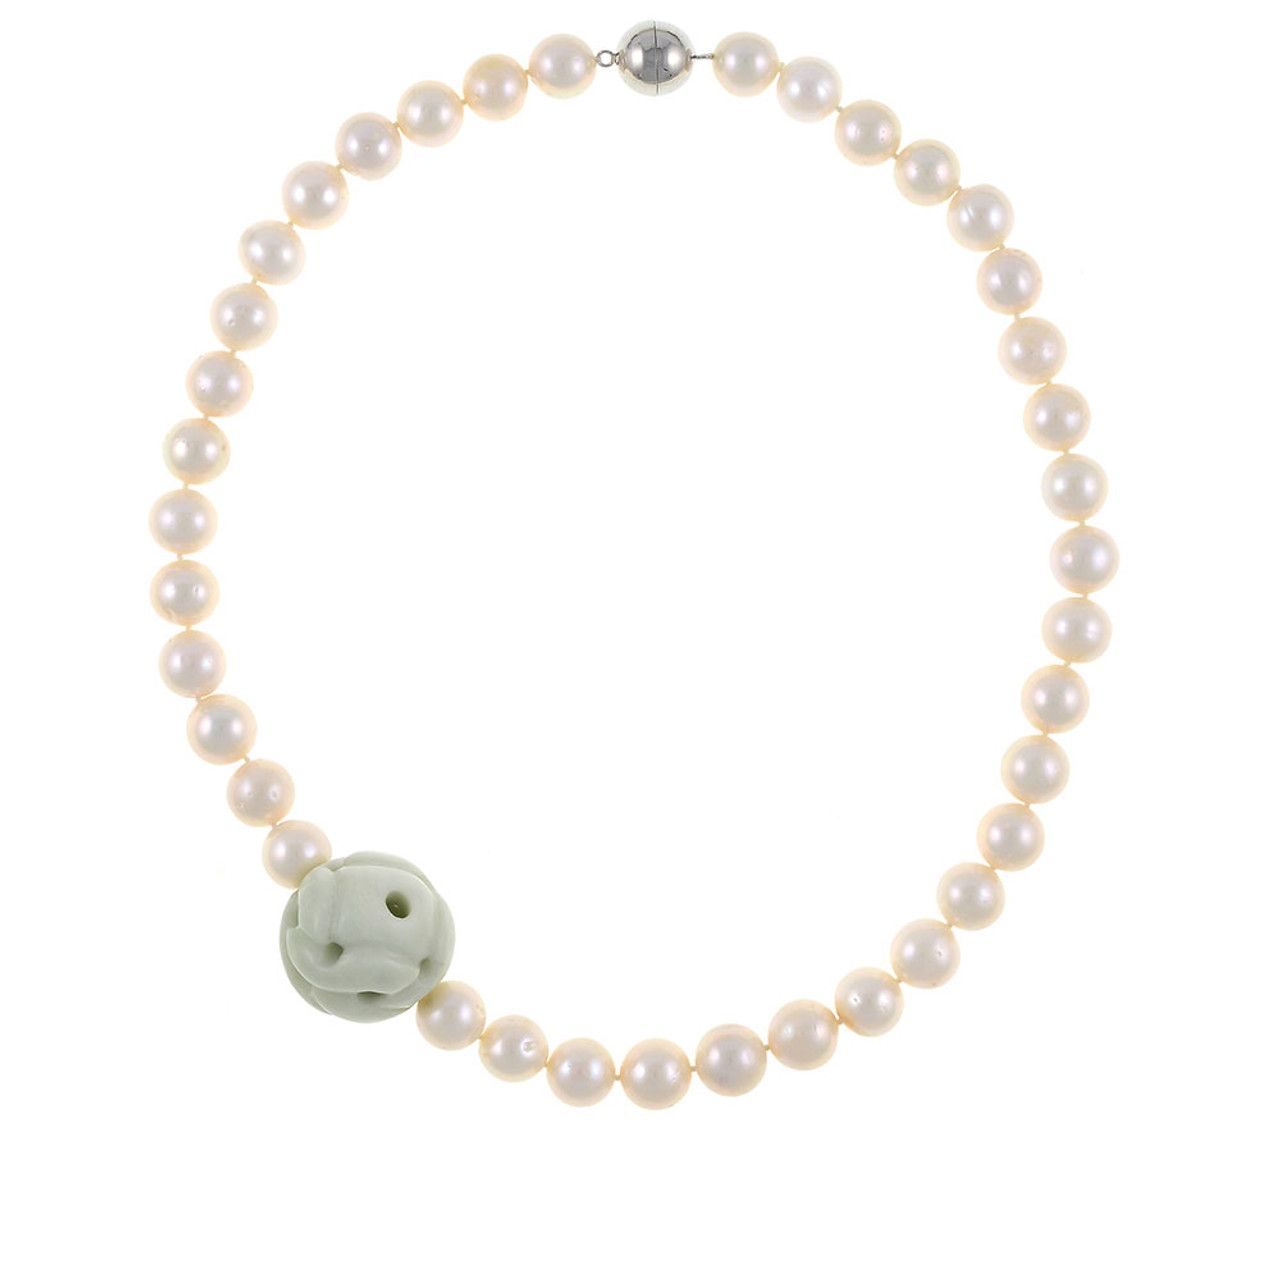 4a8d18e286017 Mandalay - Pearl Necklace with Jade